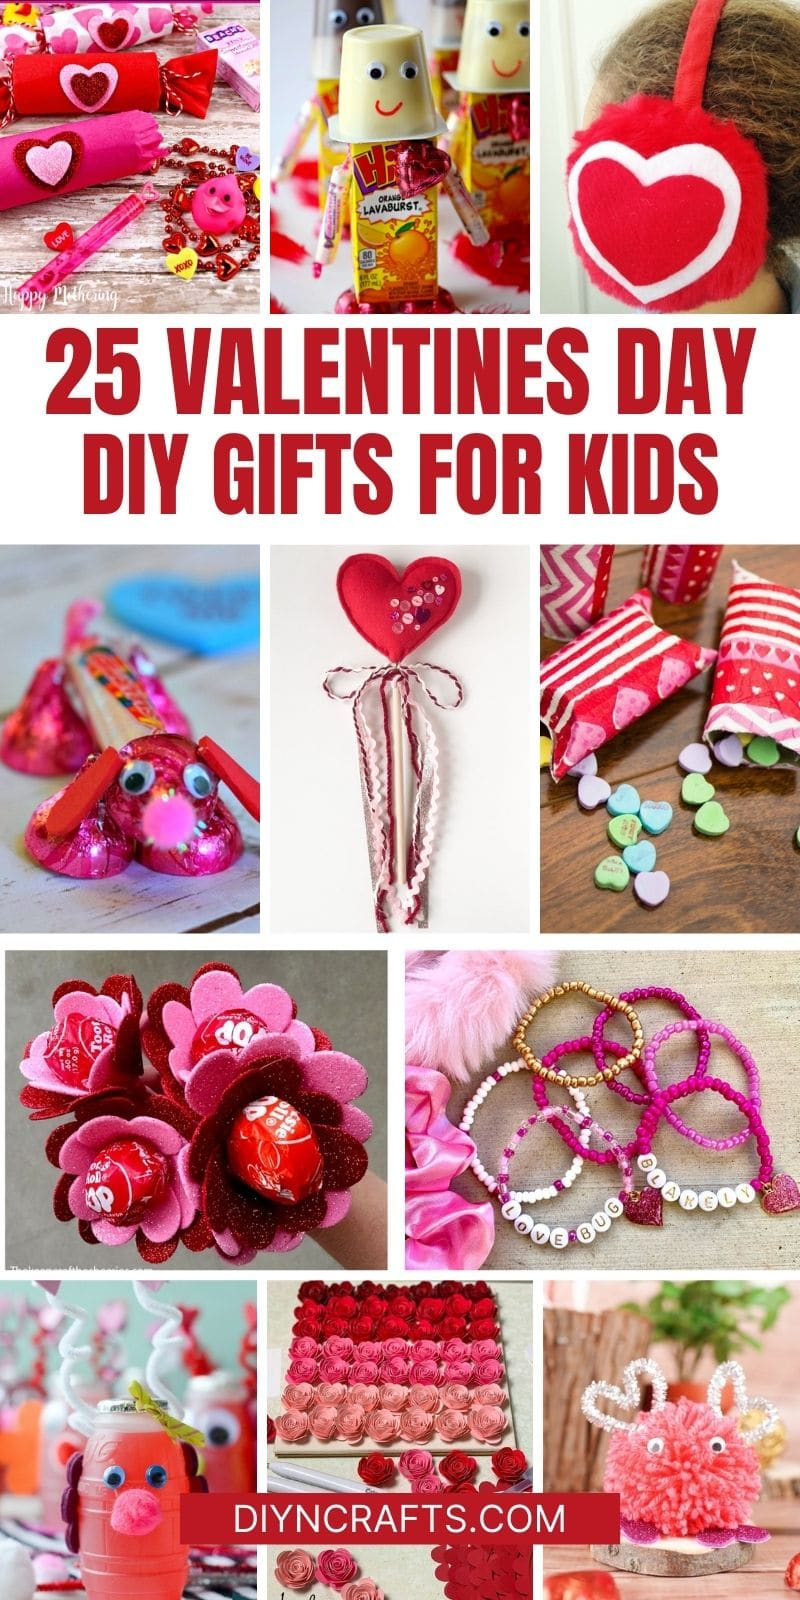 Valentines kids gifts collage